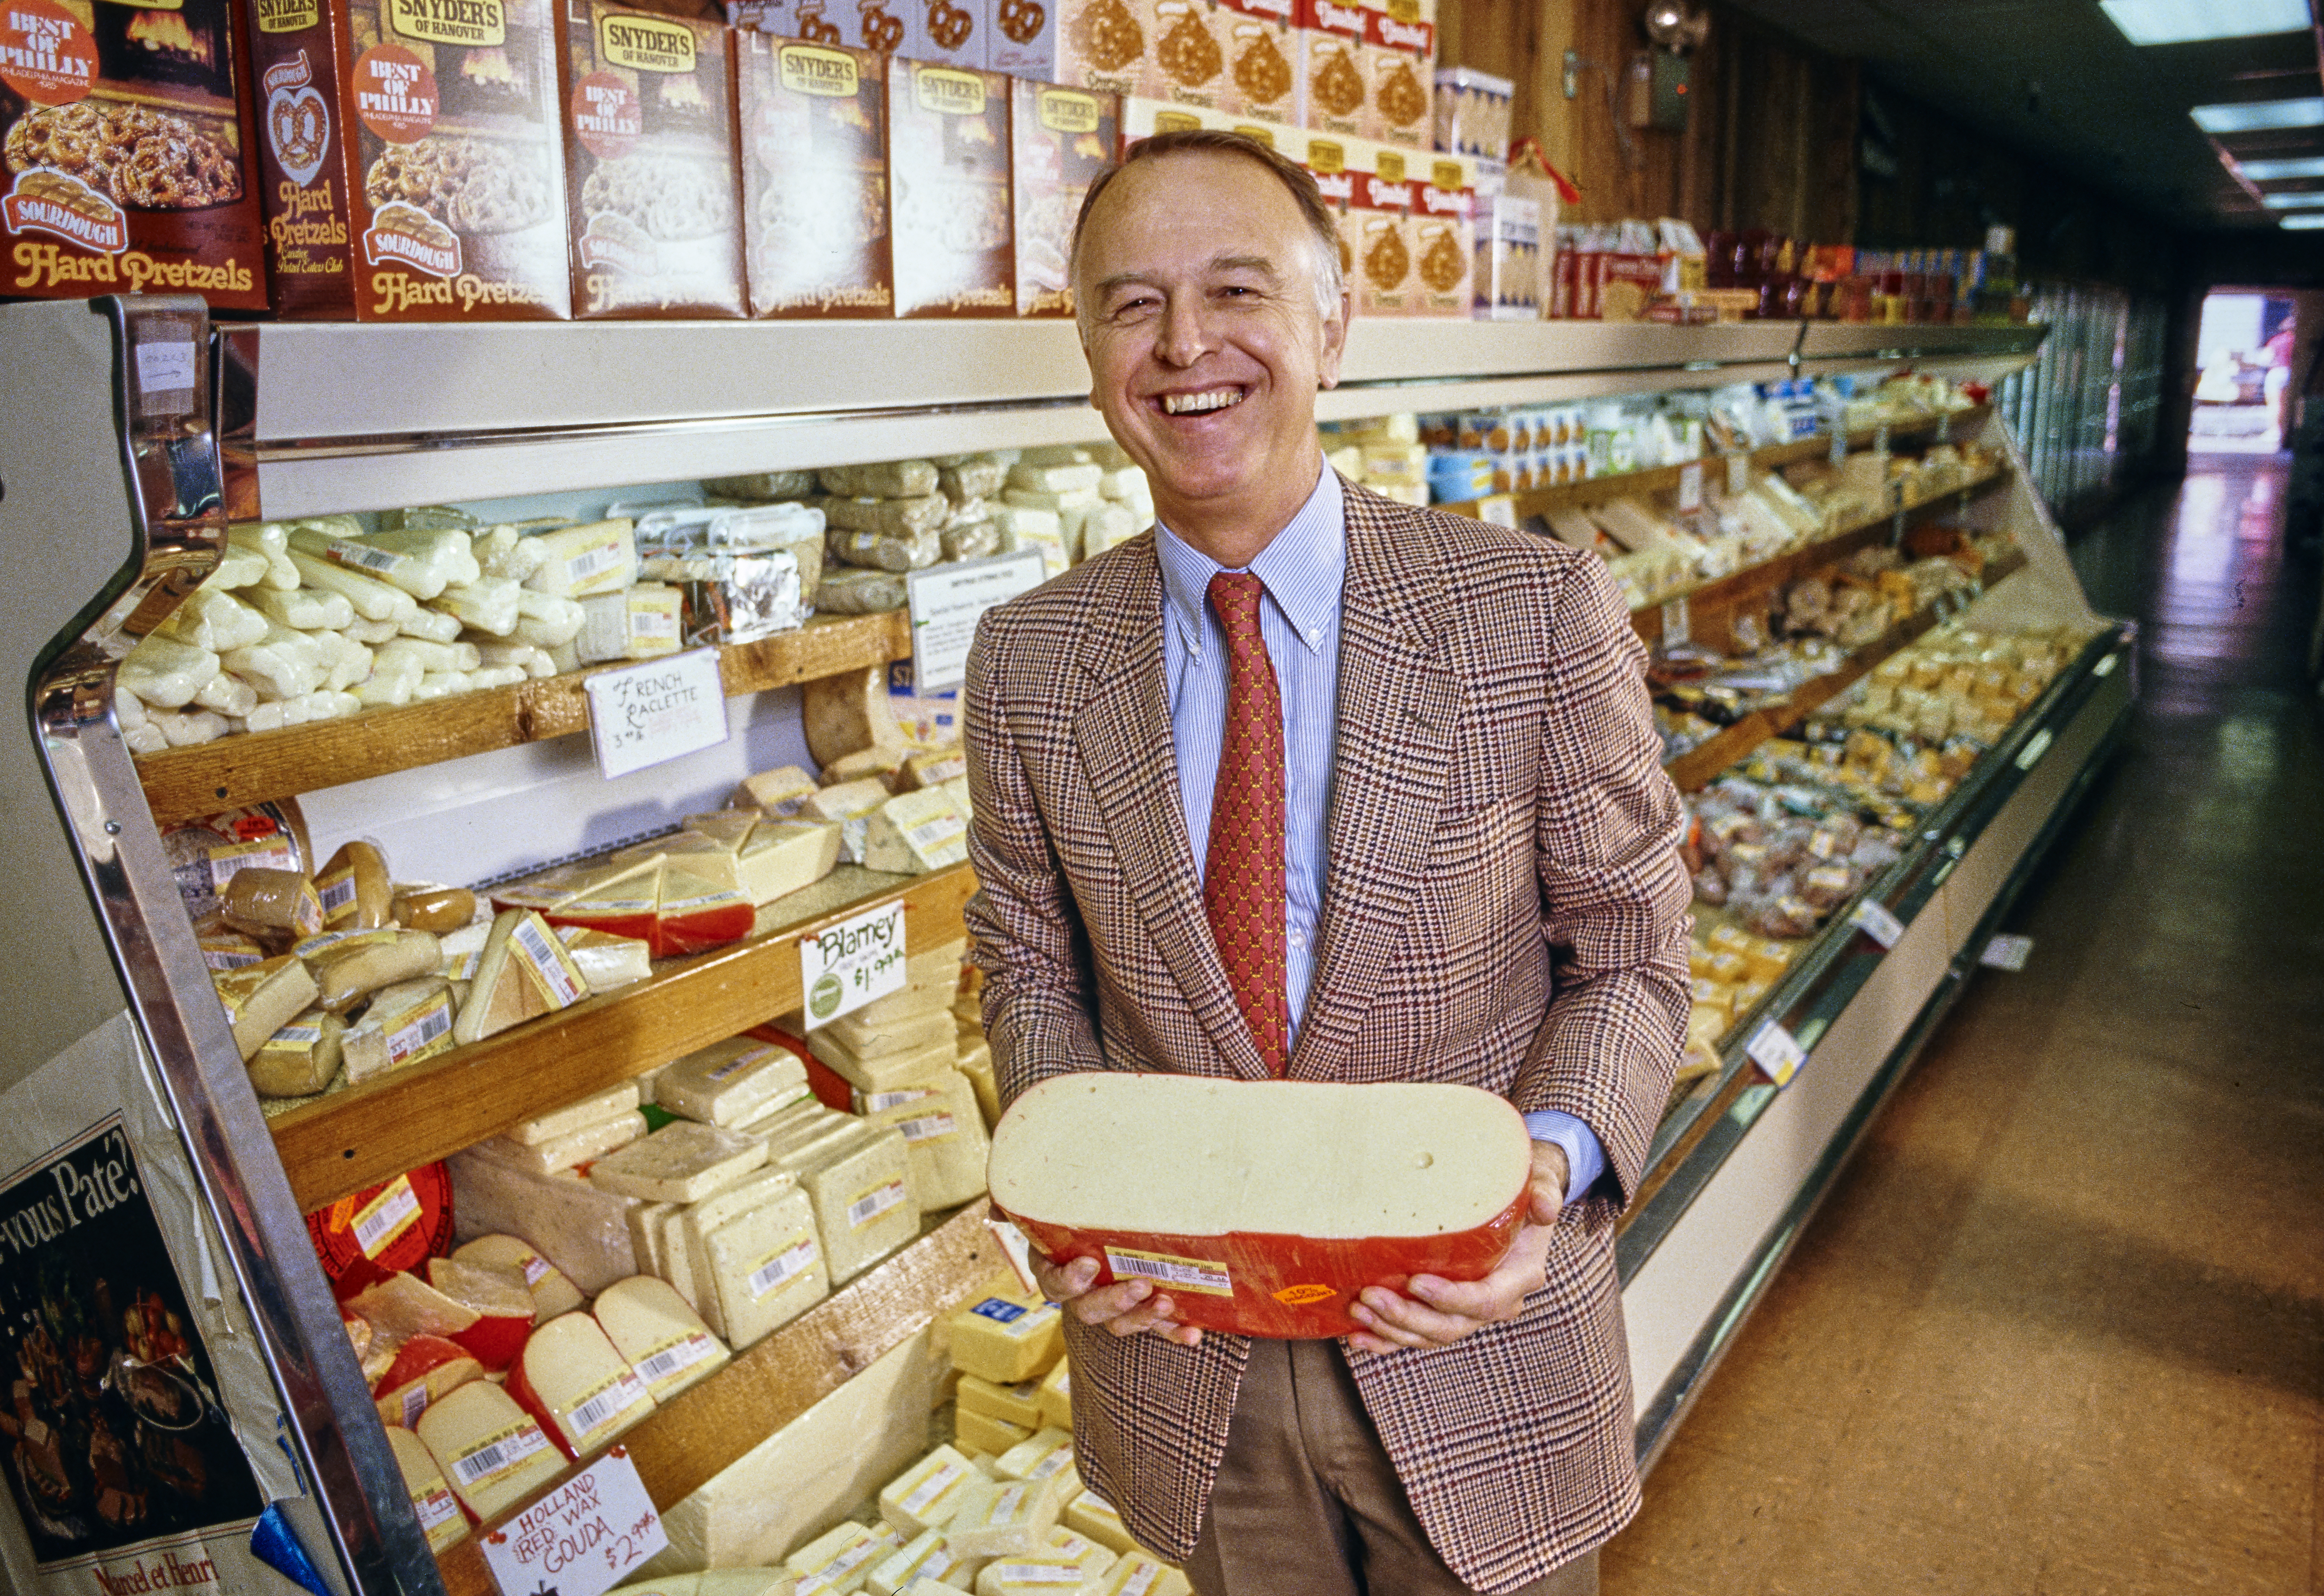 Trader Joe's founder Joe Coulombe smiling and holding a block of cheese in a store.